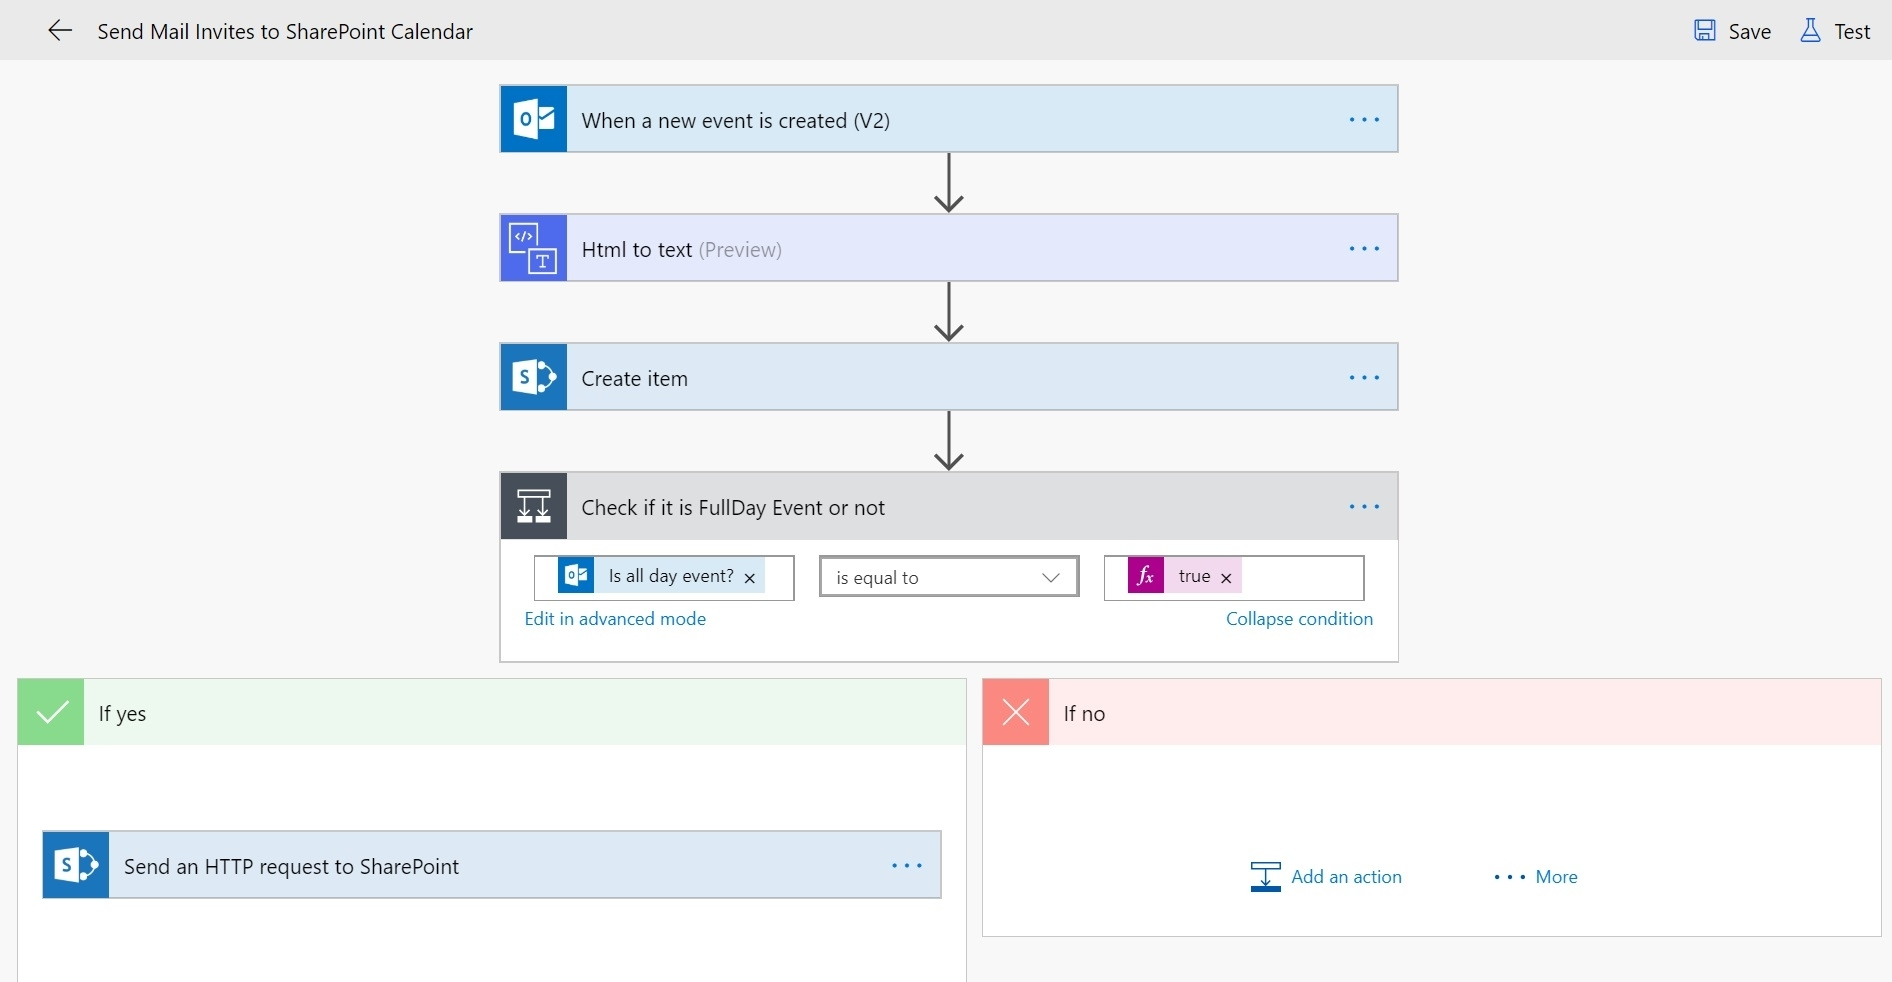 Send Meeting Invites To Sharepoint Online Calendar - Cloud Decoded intended for Flow Template To Copy Dates From Sharepoint Calendars